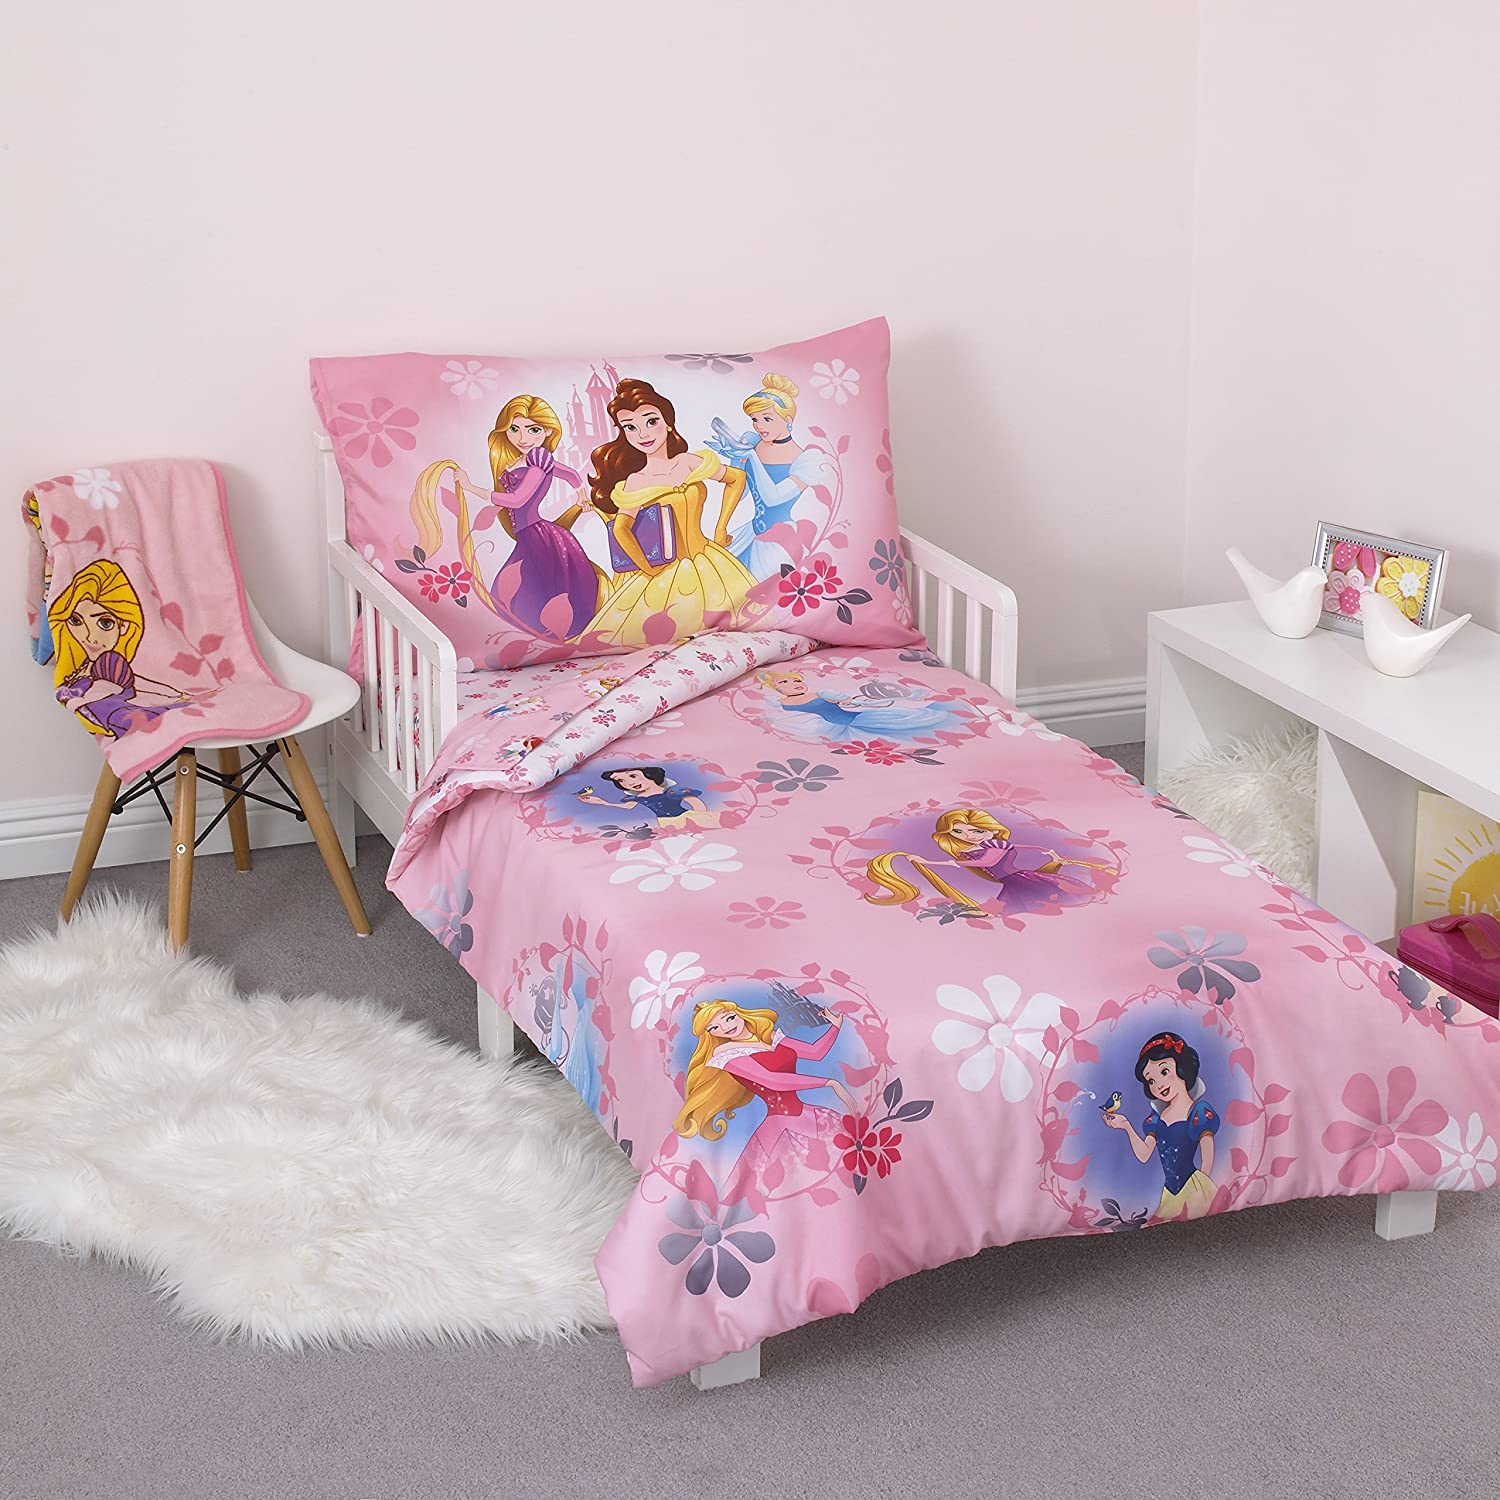 amazoncom disney 4 piece fluttery friends toddler bedding set lavender minnie mouse baby